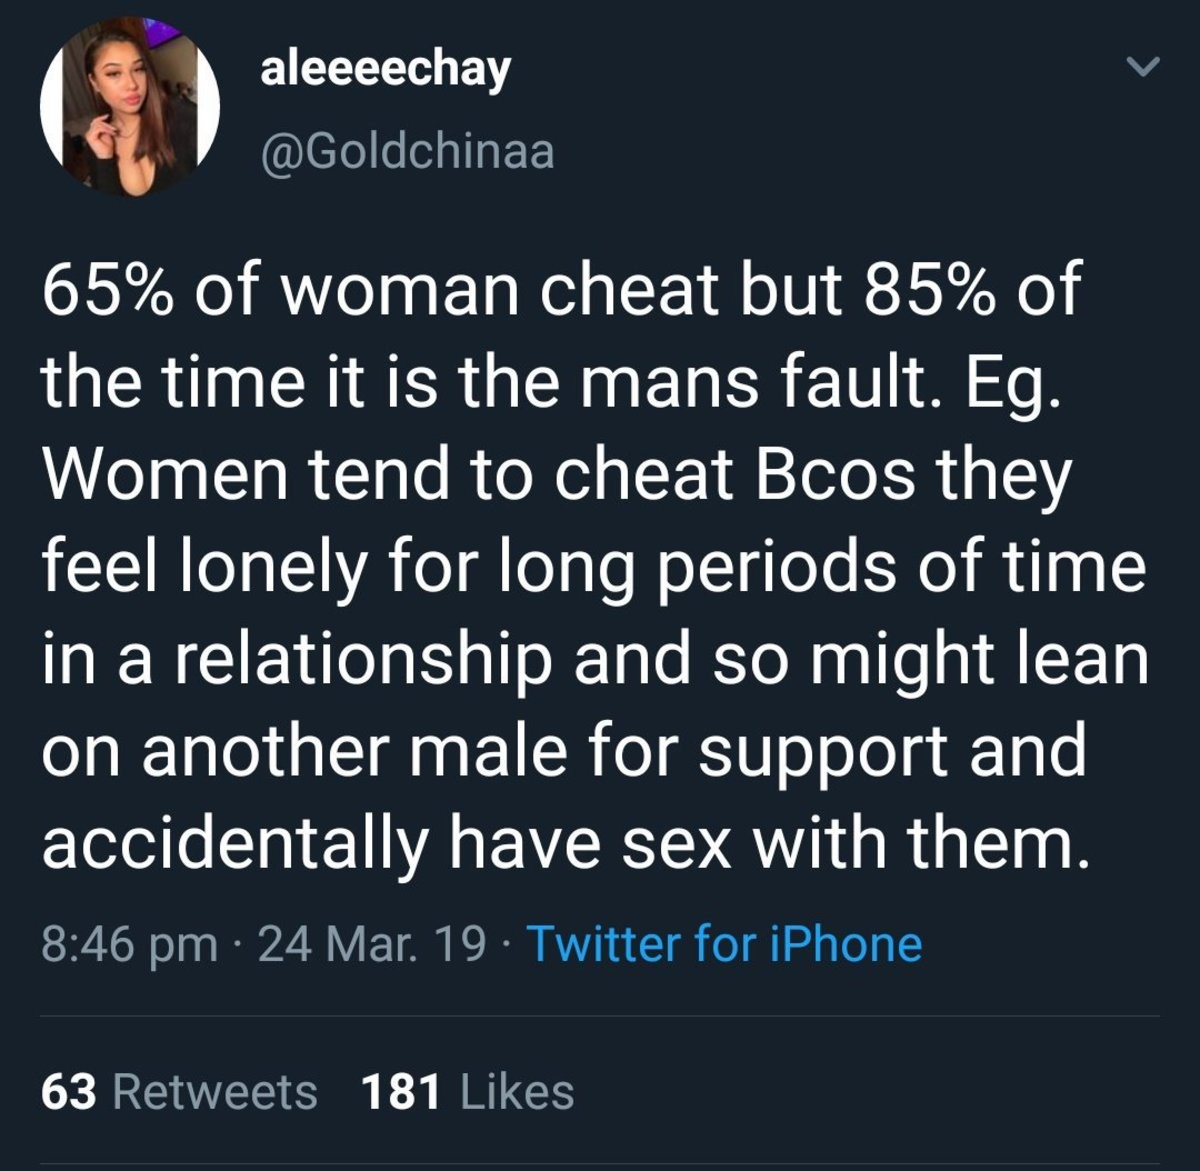 Why women cheat. join list: DailyTumblr (983 subs)Mention History DailyTumblr.. Sounds like thot propaganda but ok